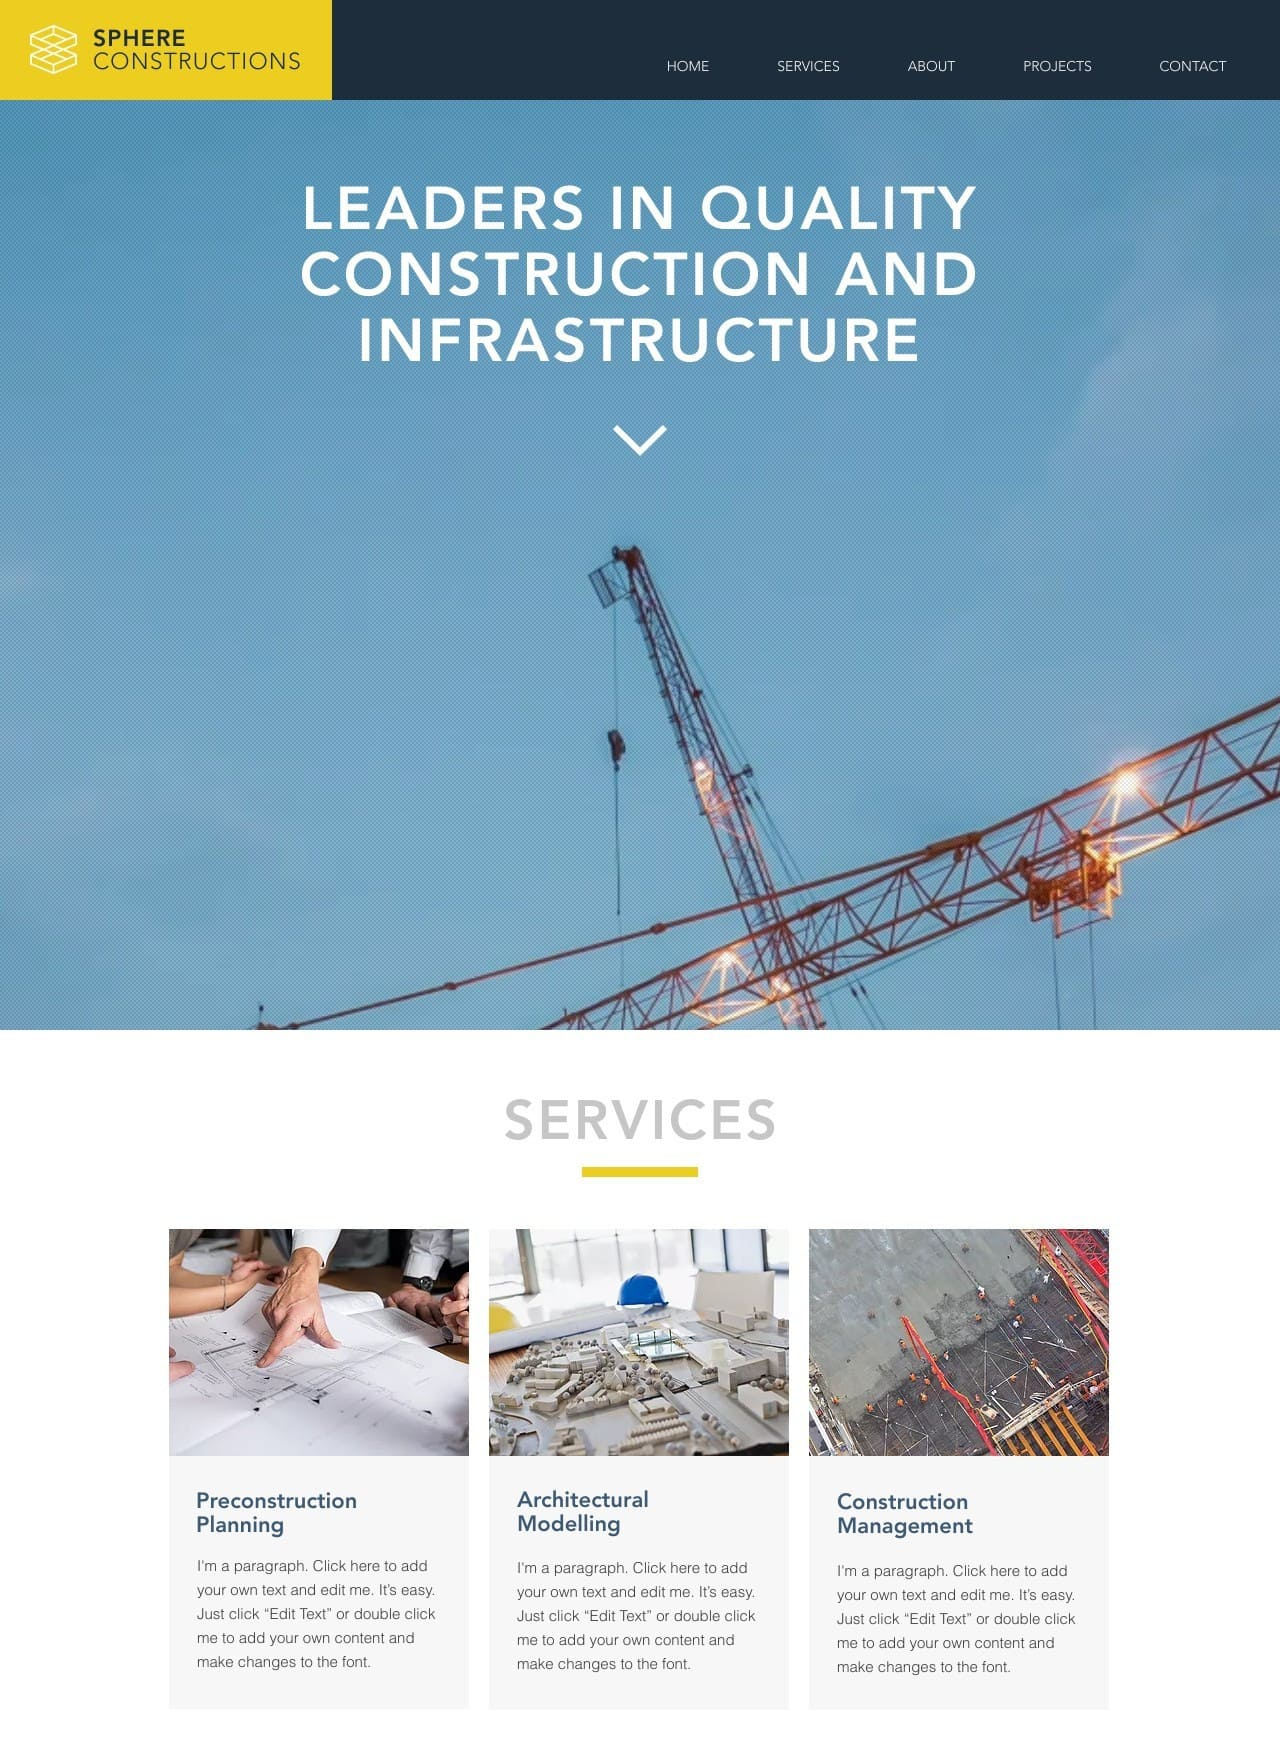 6 Best Wix Templates For Architect Websites-image2